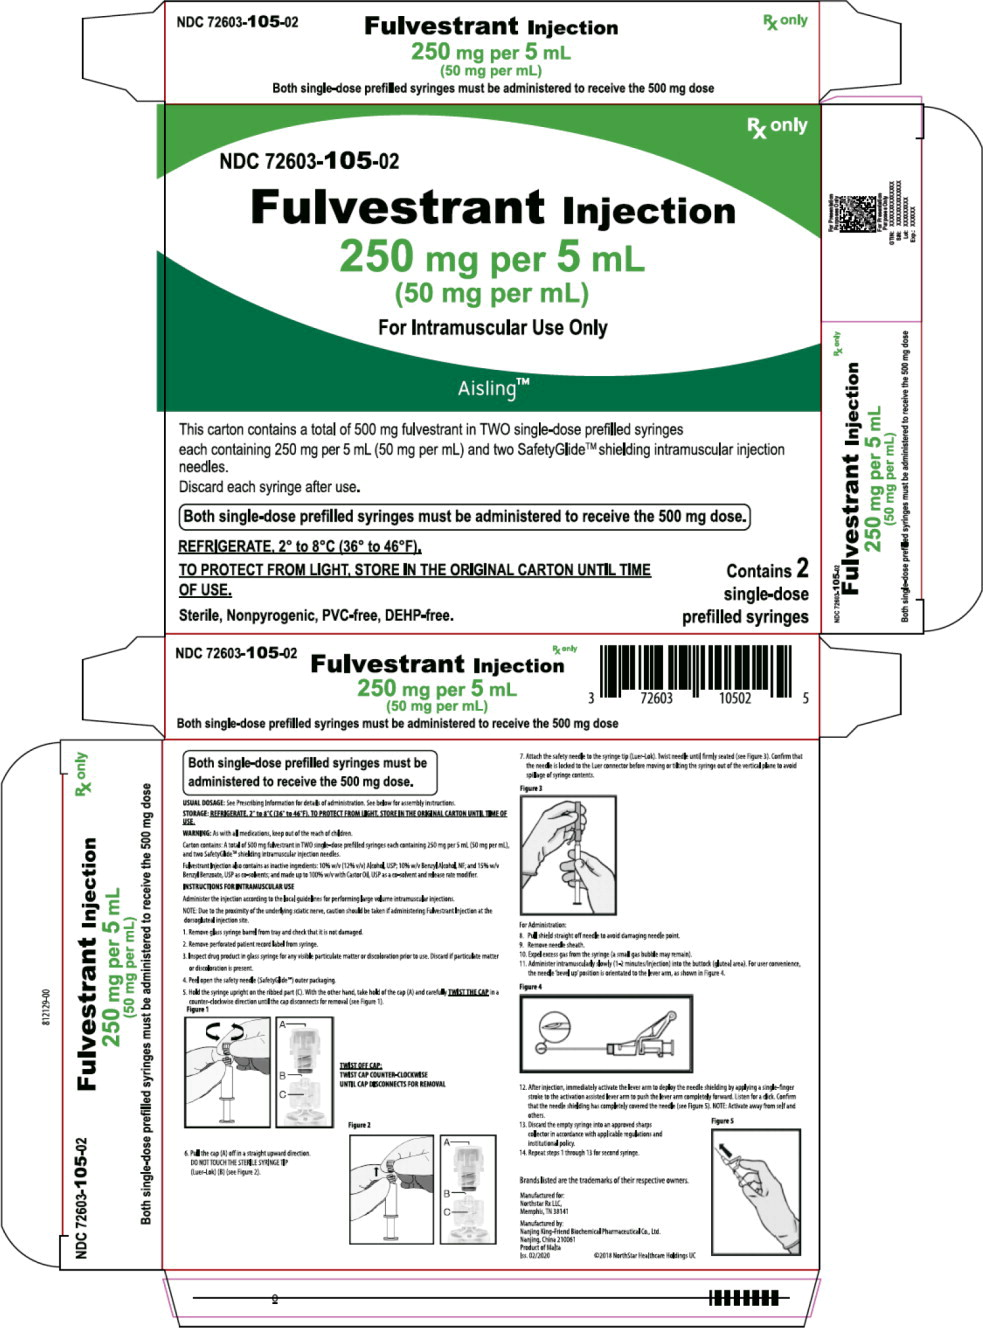 Principal Display Panel – Fulvestrant Injection, 250 mg per 5 mL (50 mg per mL) Carton